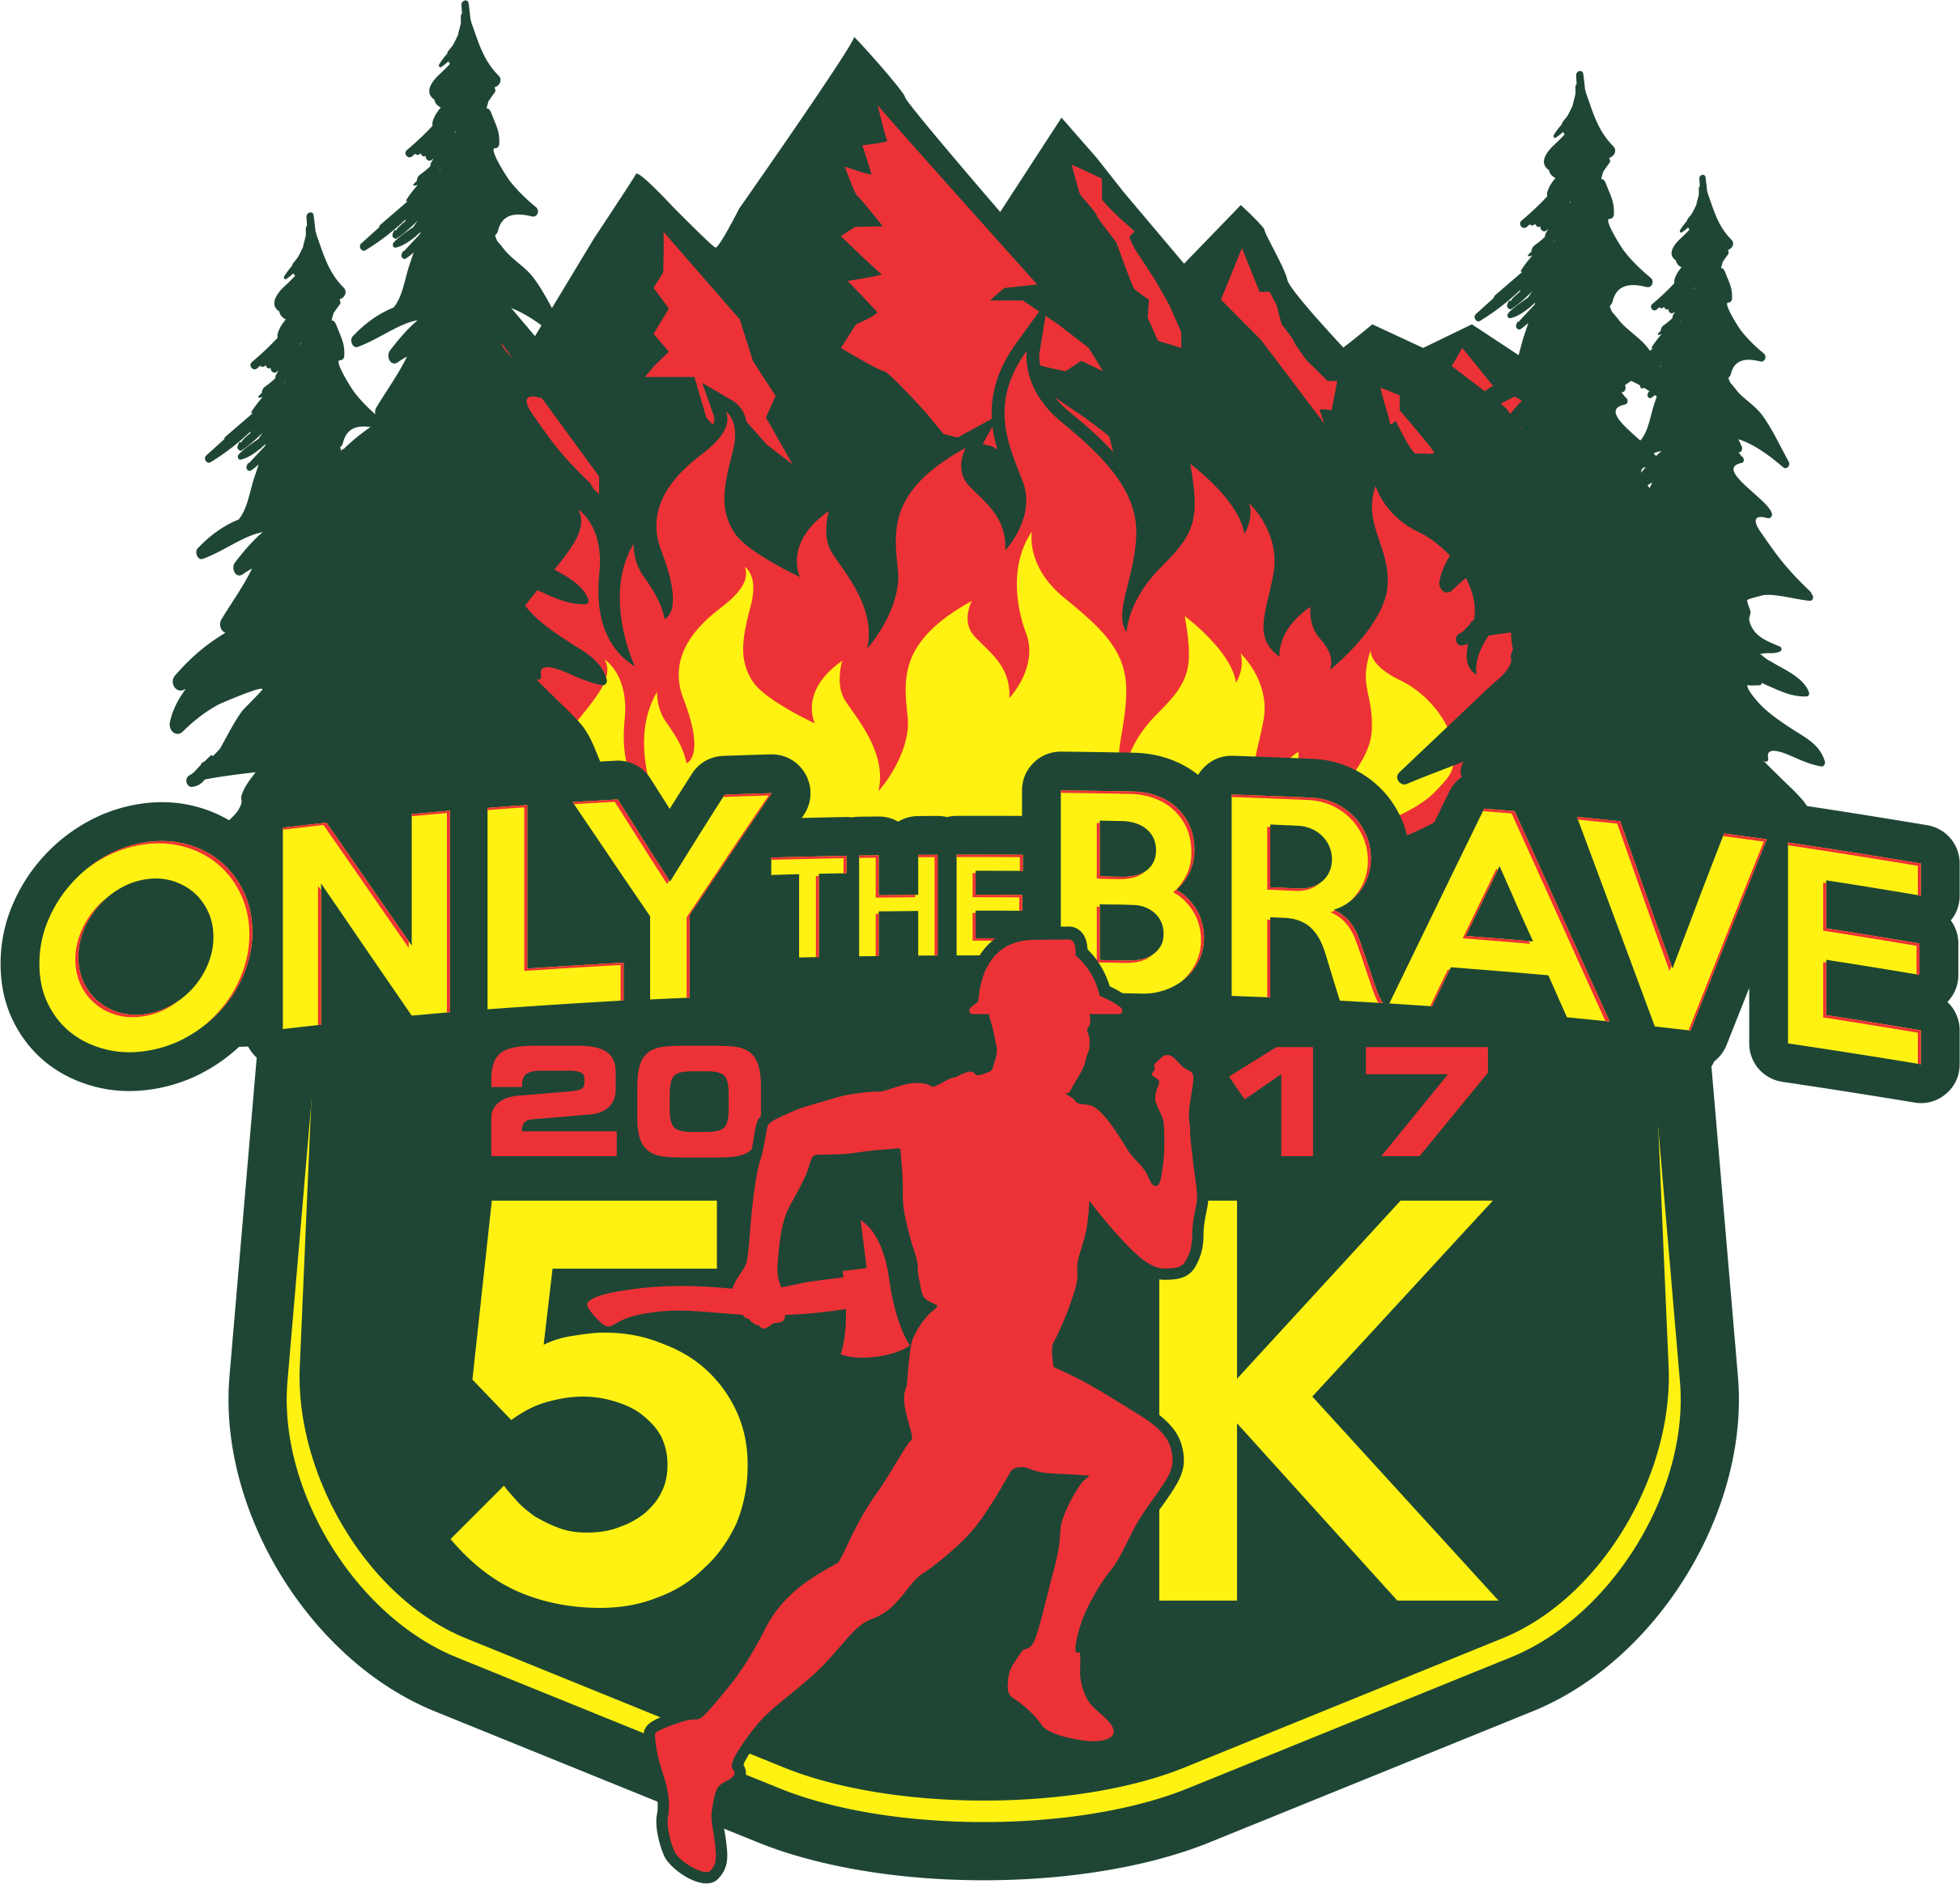 Only the brave k. Couch clipart couch to 5k